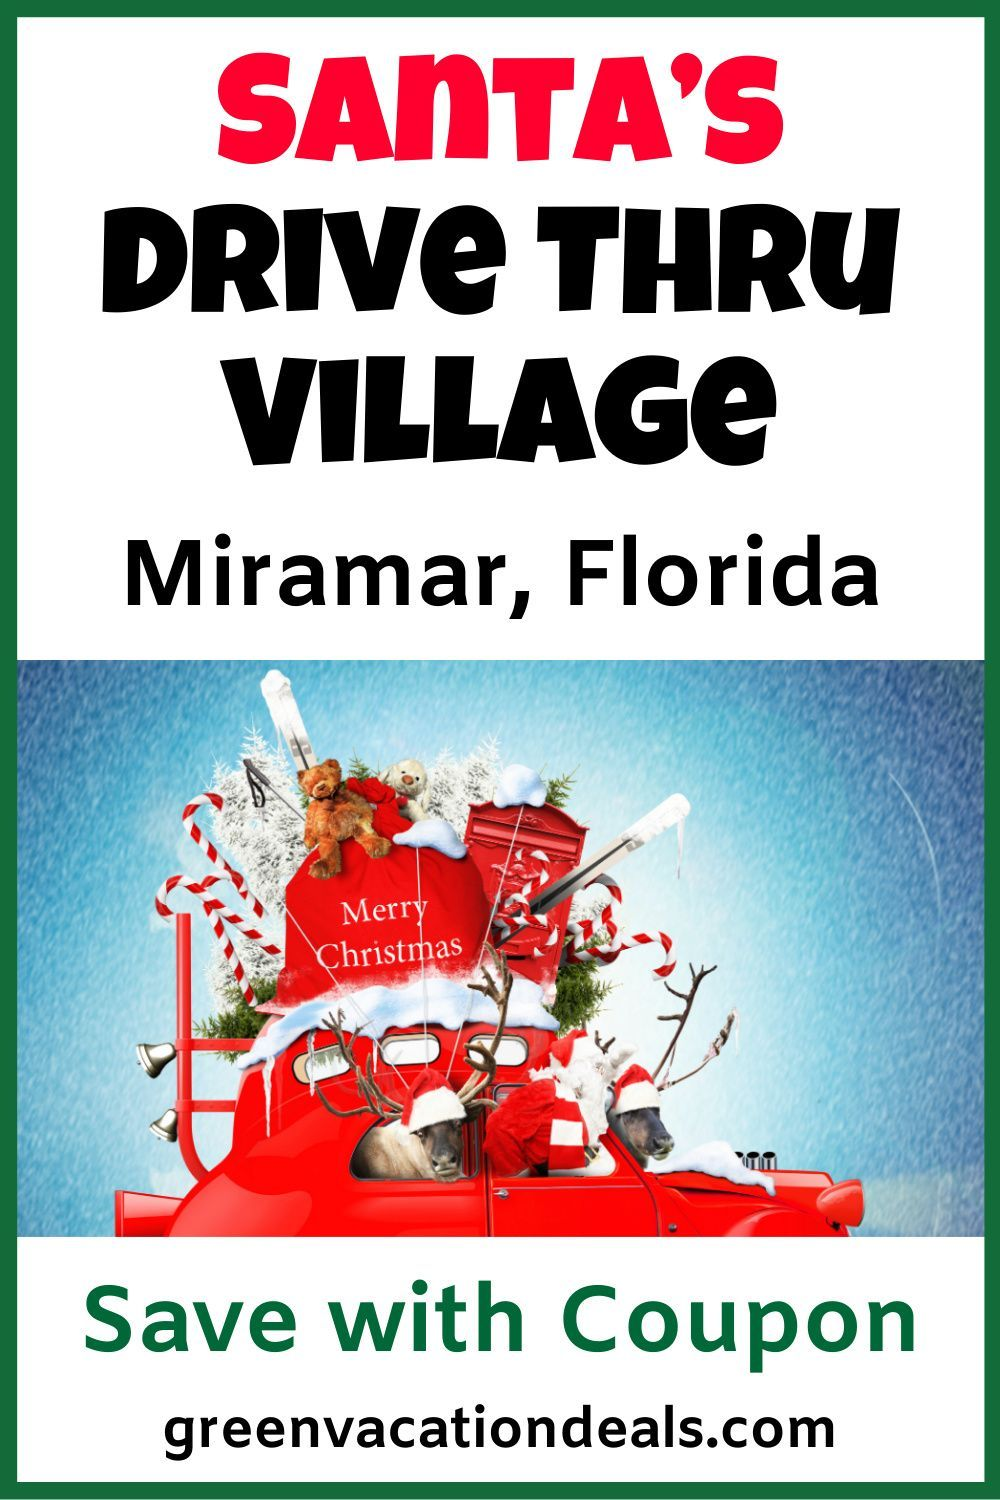 Coupon For Santa S Drive Thru Village In Miramar Florida Green Vacation Deals Christmas Vacation Destinations Christmas Travel Destinations Holiday Travel Destinations